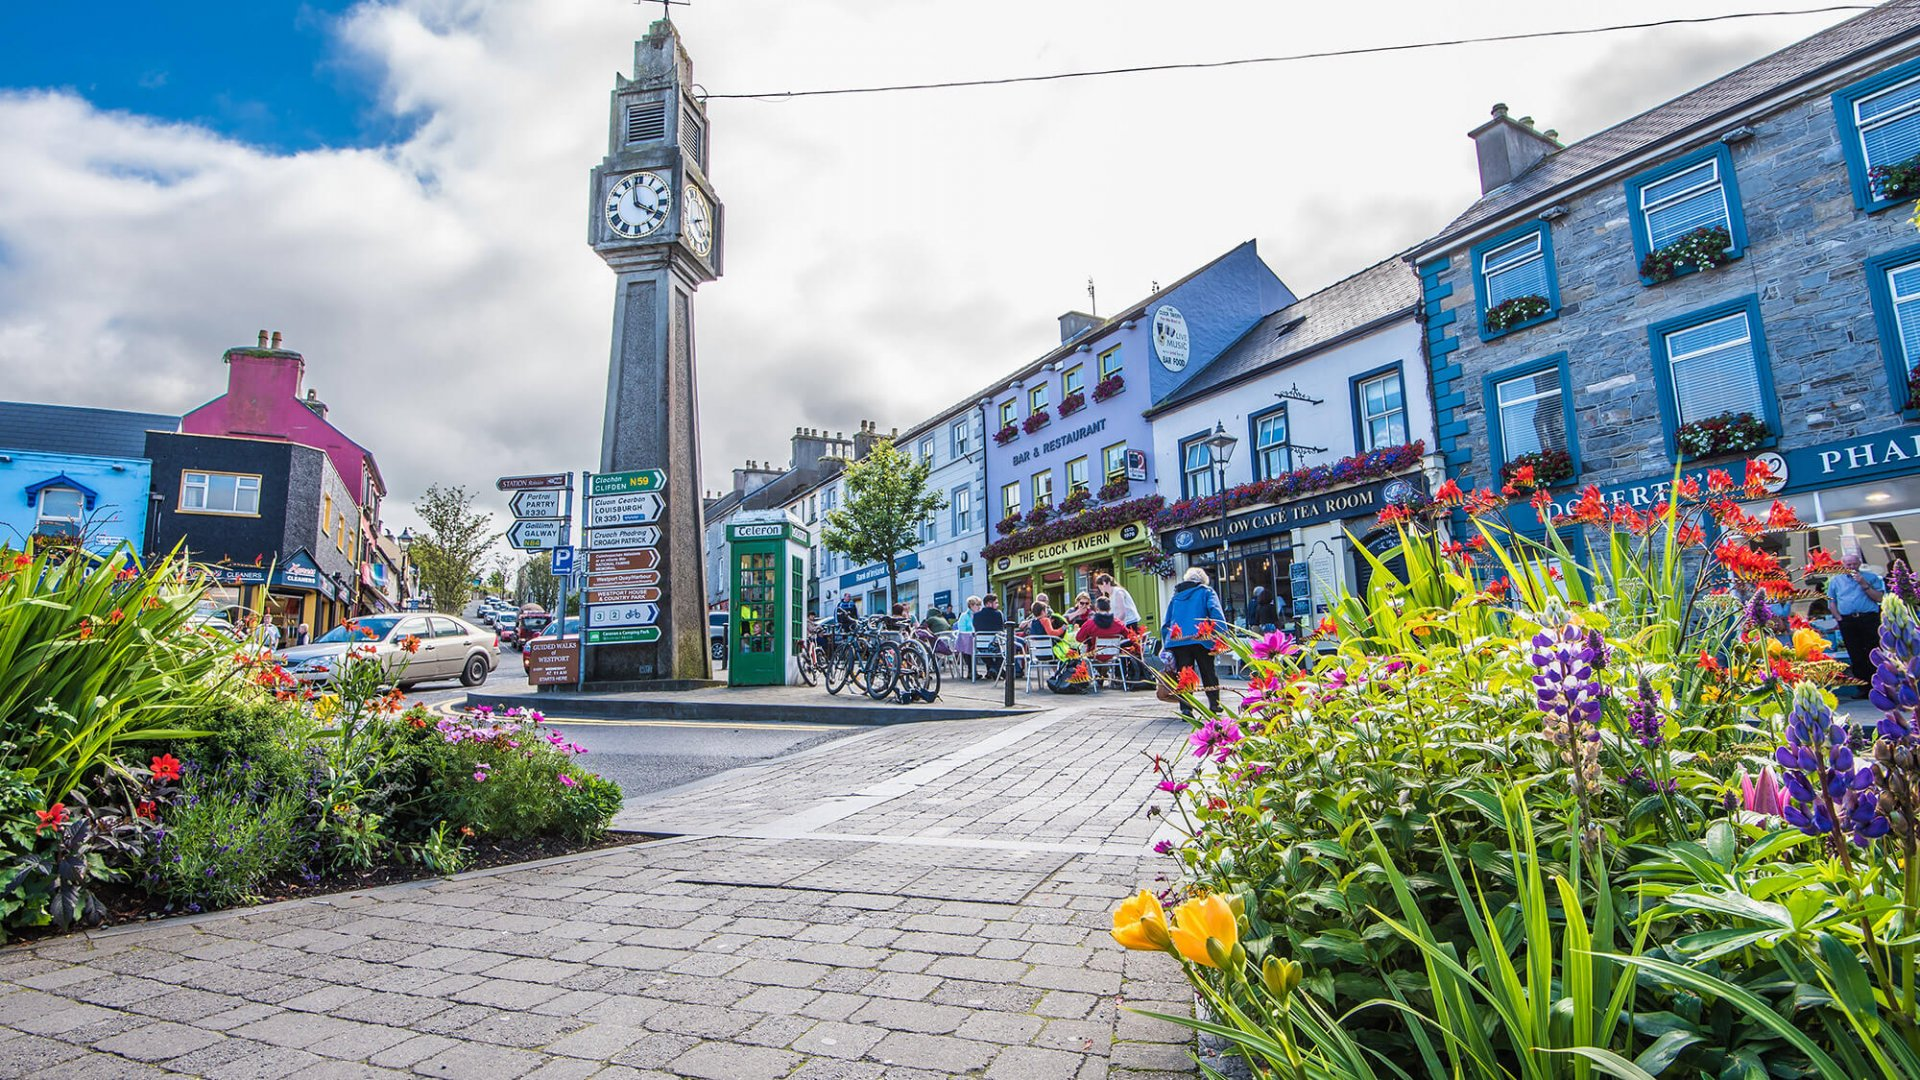 Clock tower and flowers in Westport town centre